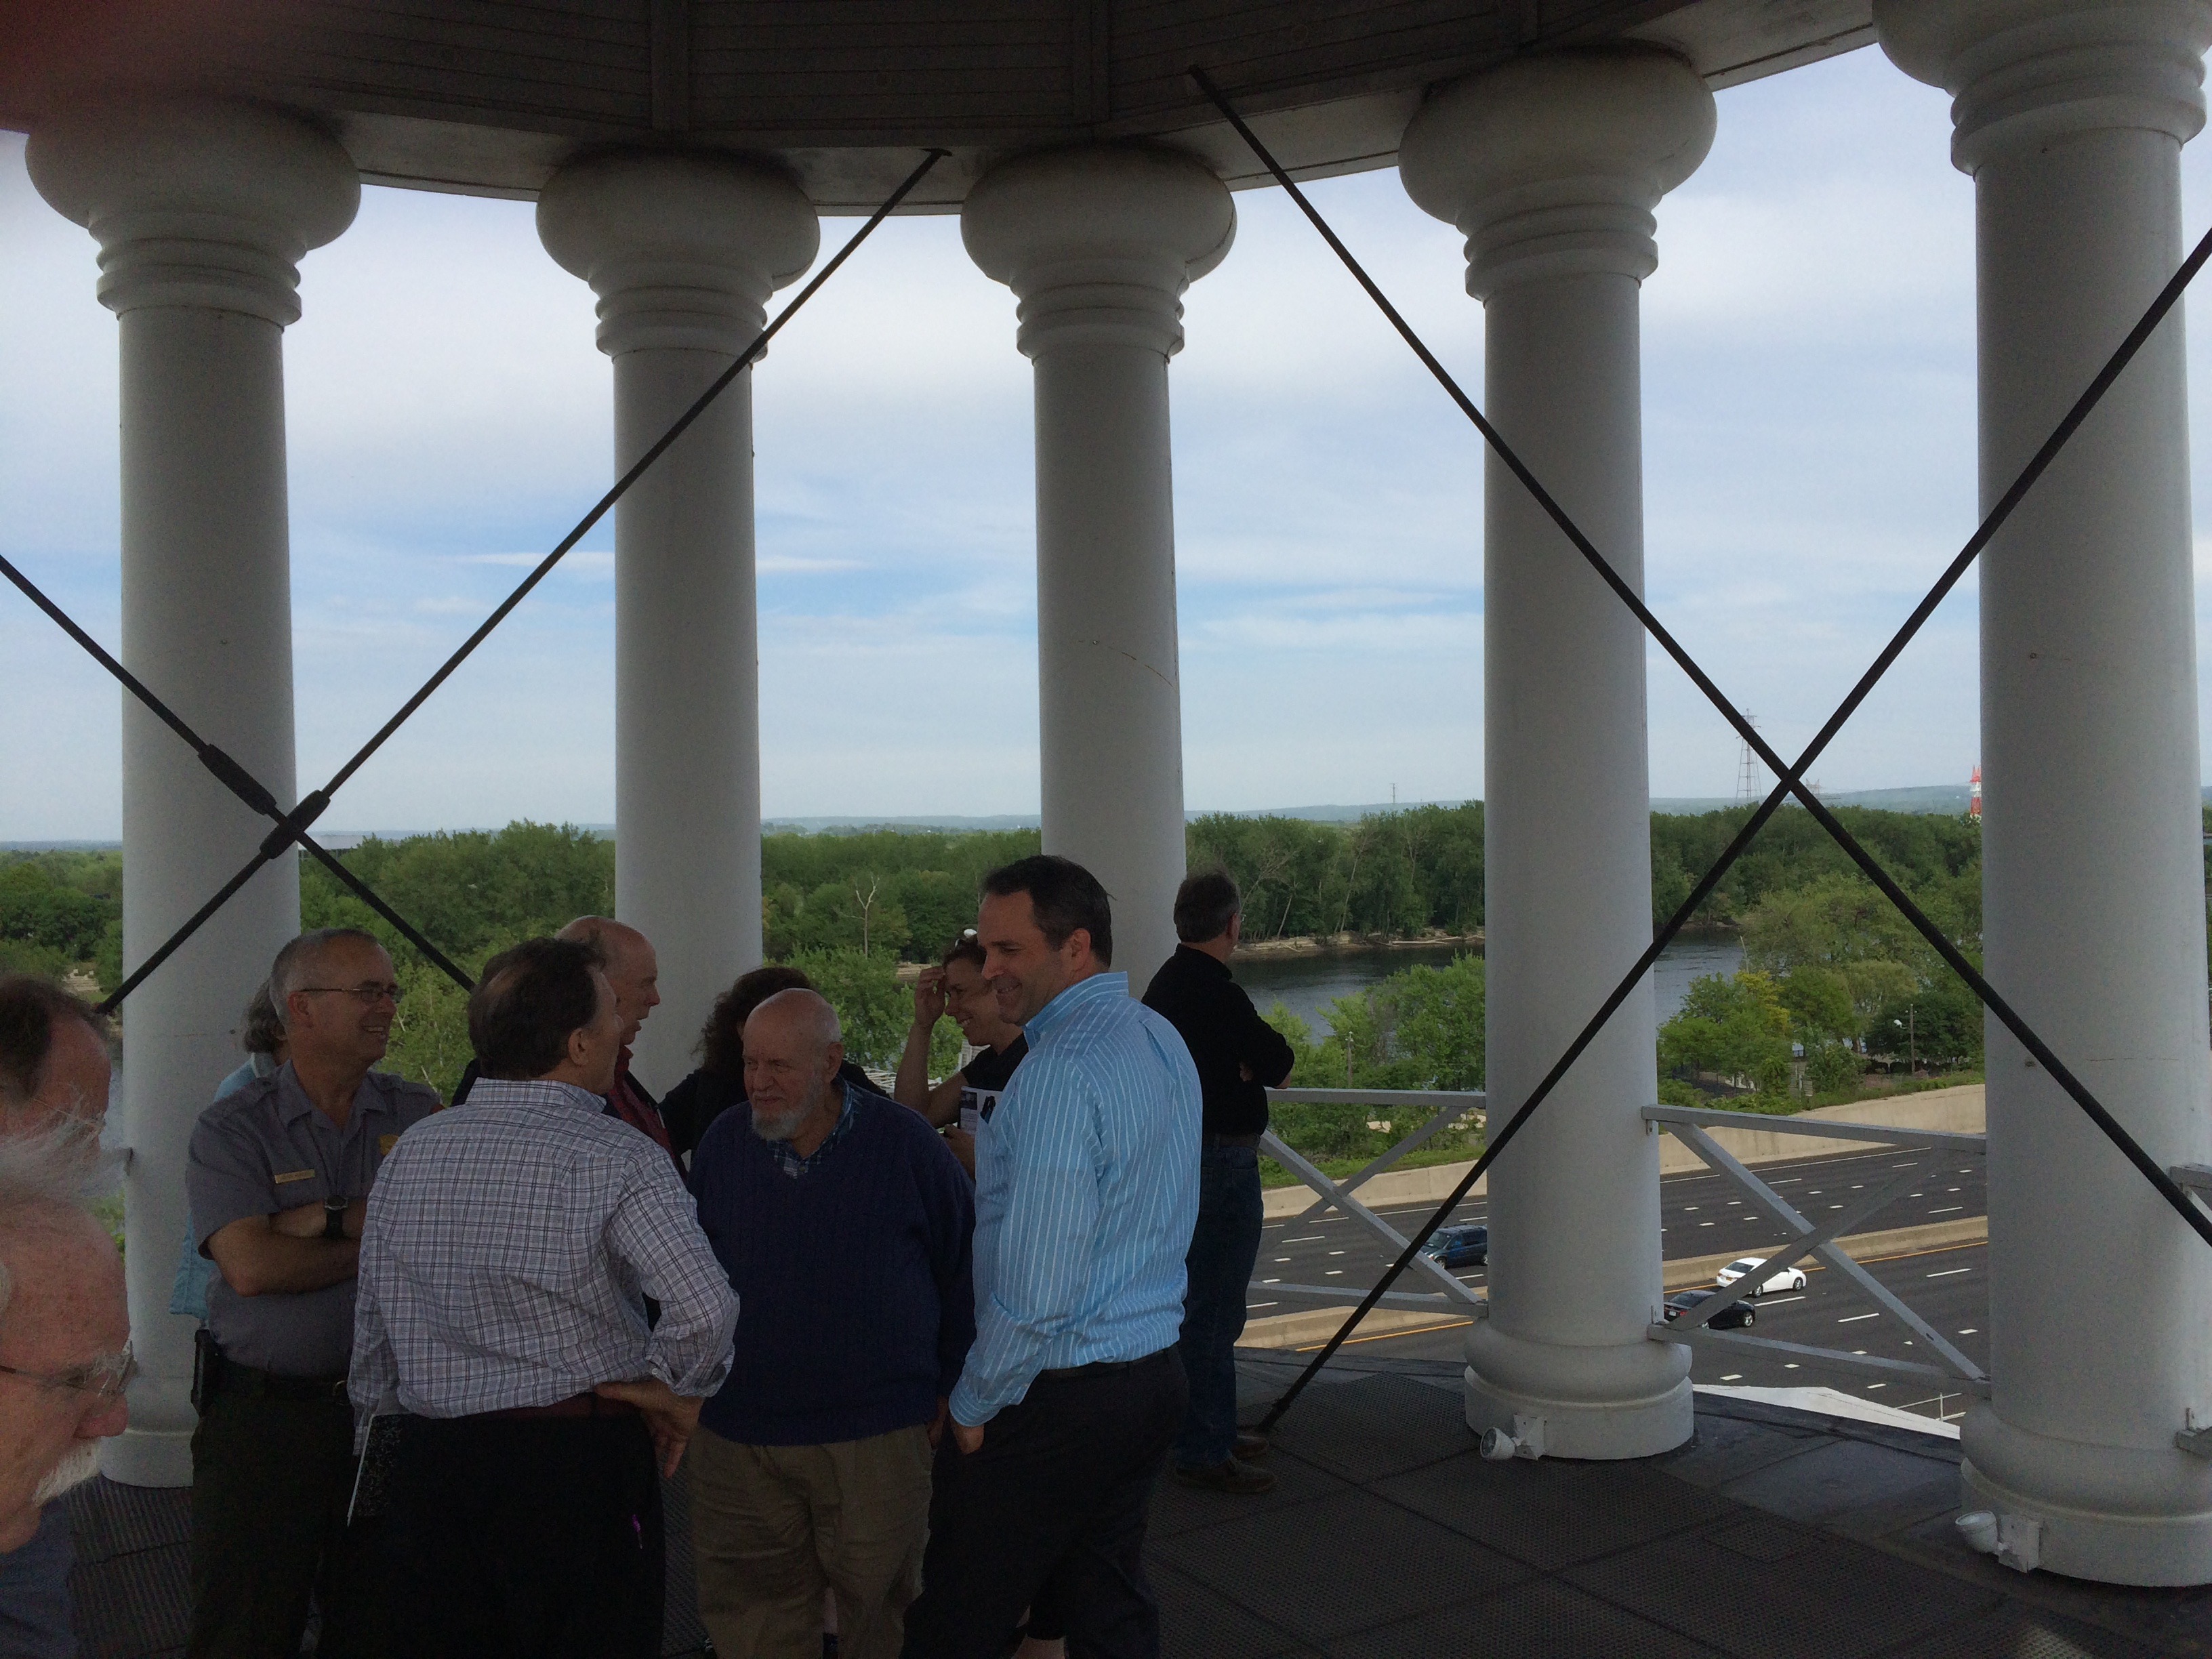 Our third tour guide was Larry Dooley, general manager of CG Management (middle right, left hand in pocket). Larry took us up inside the onion dome atop the East Armory; Interstate-91 and the Connecticut River are in the background. Photo by Eric Hintz.